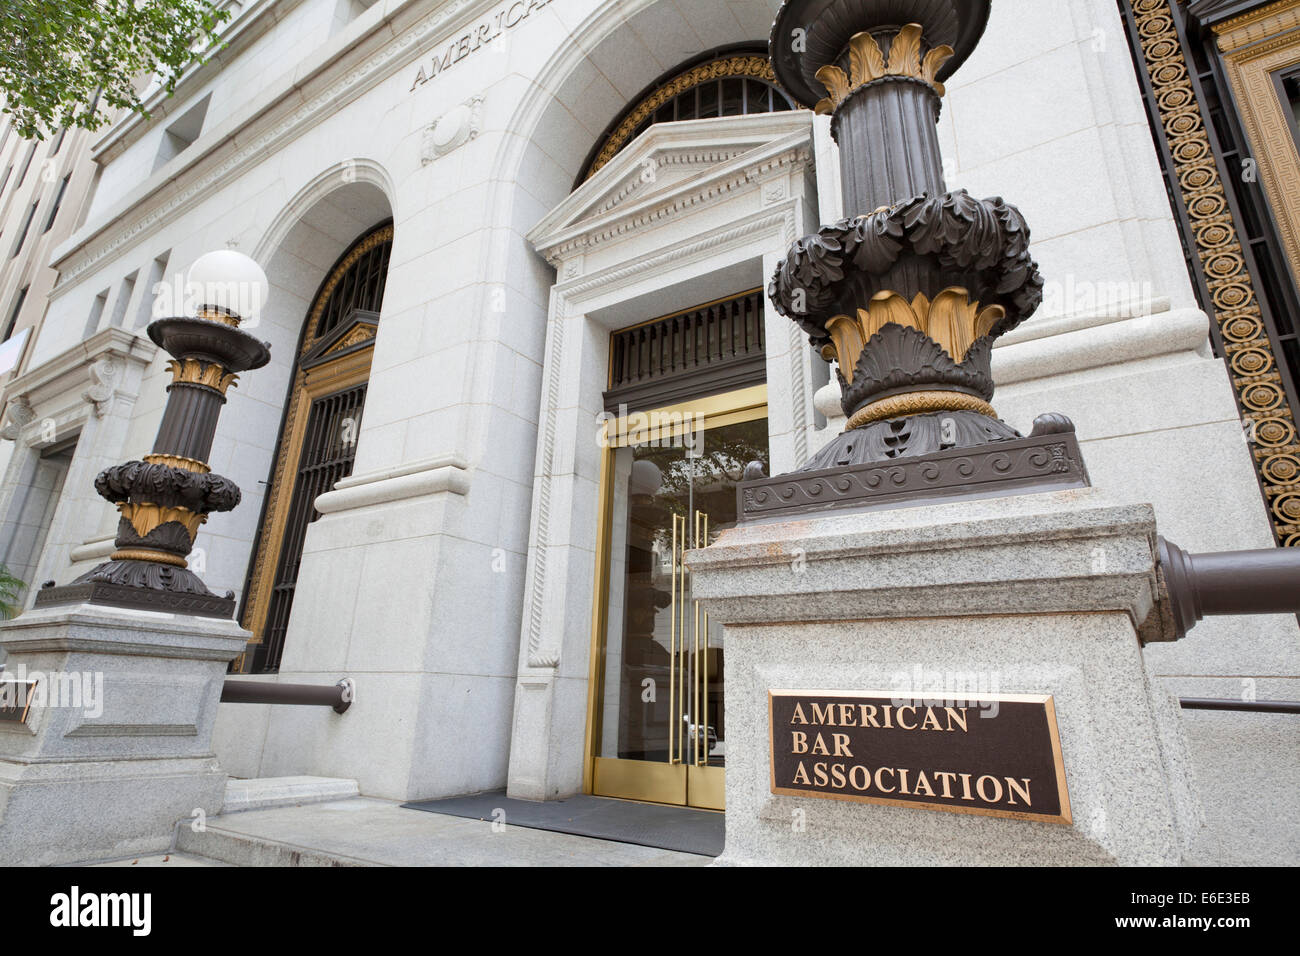 American Bar Association headquarters - Washington, DC USA